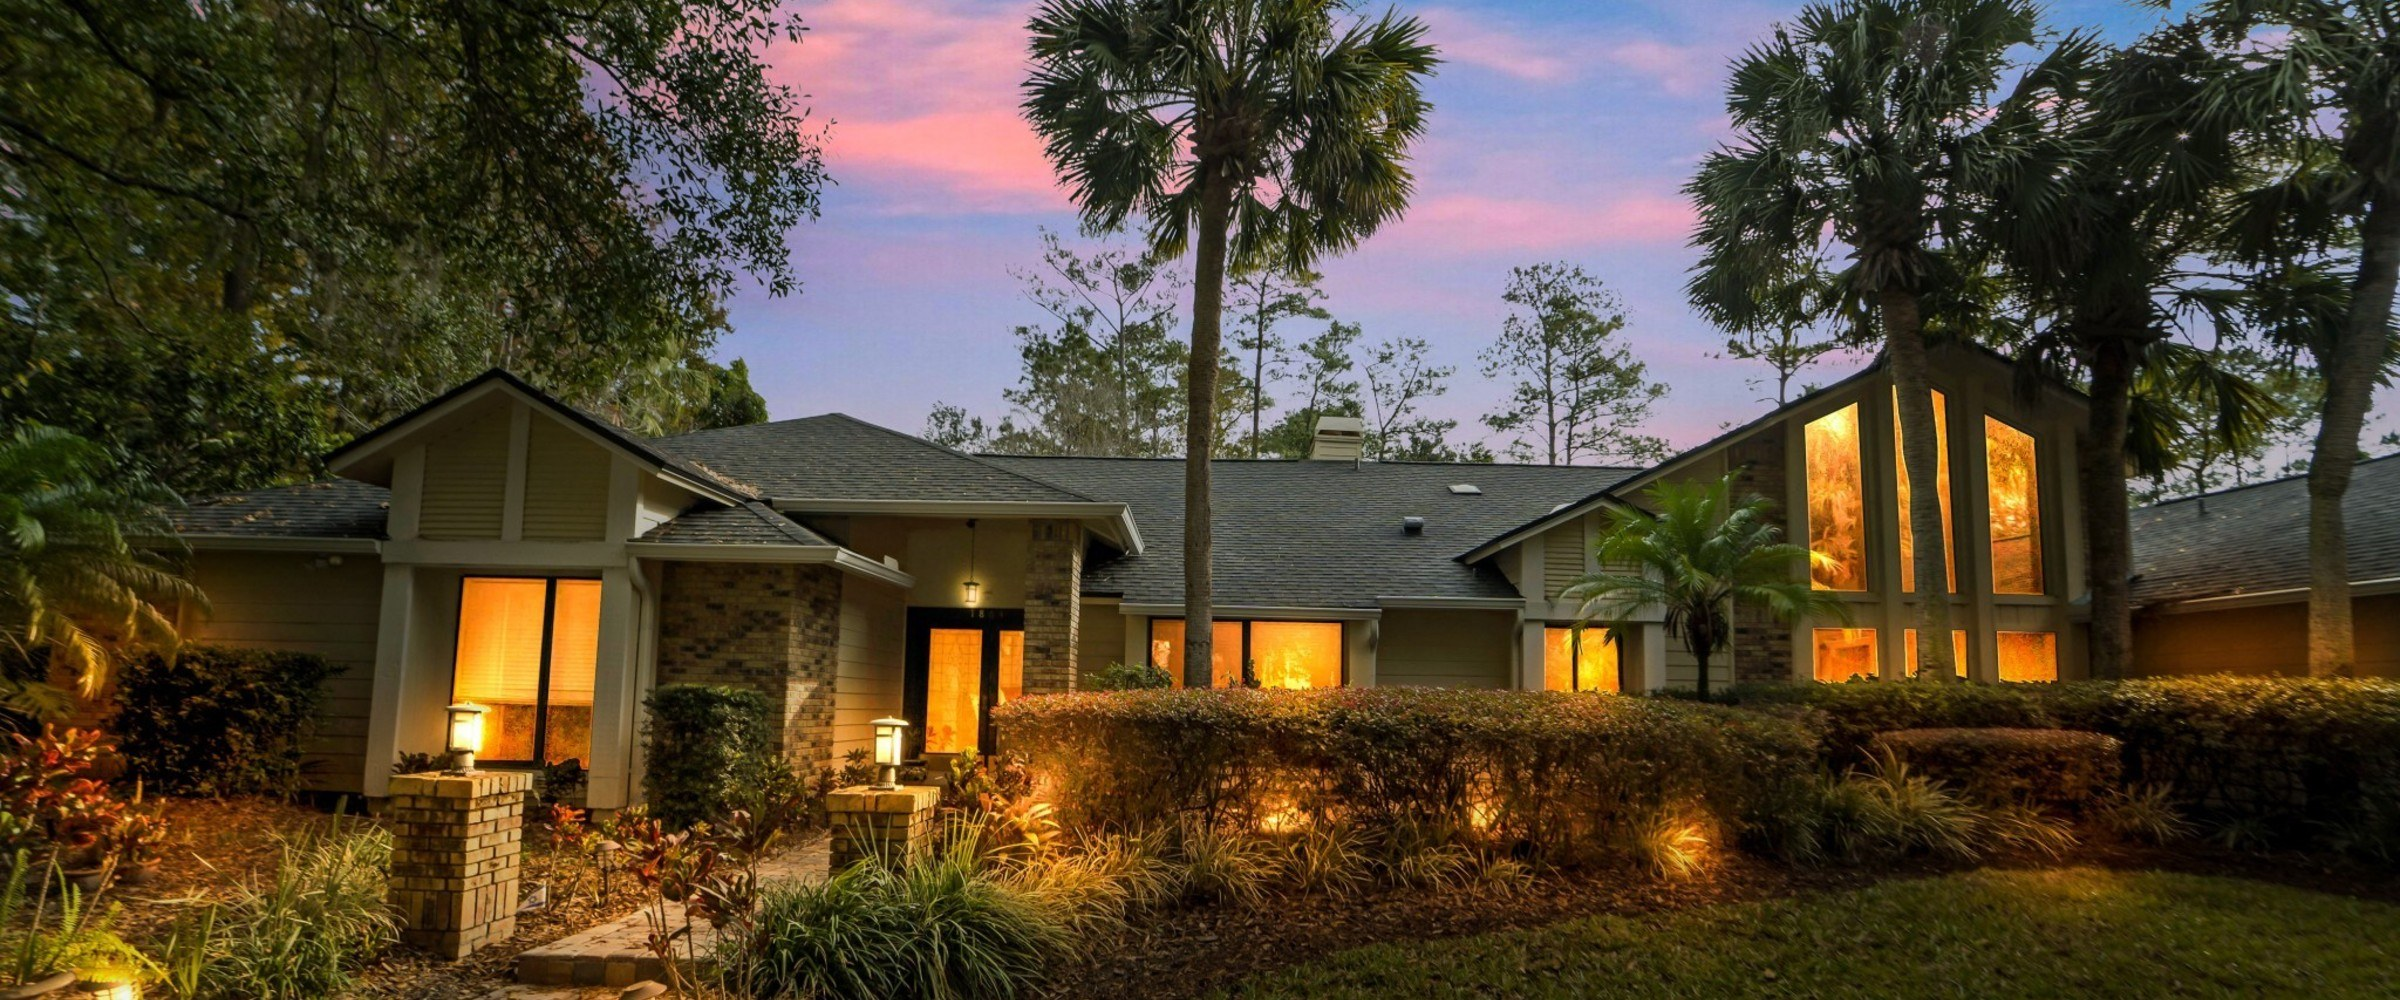 First time home buyer Florida